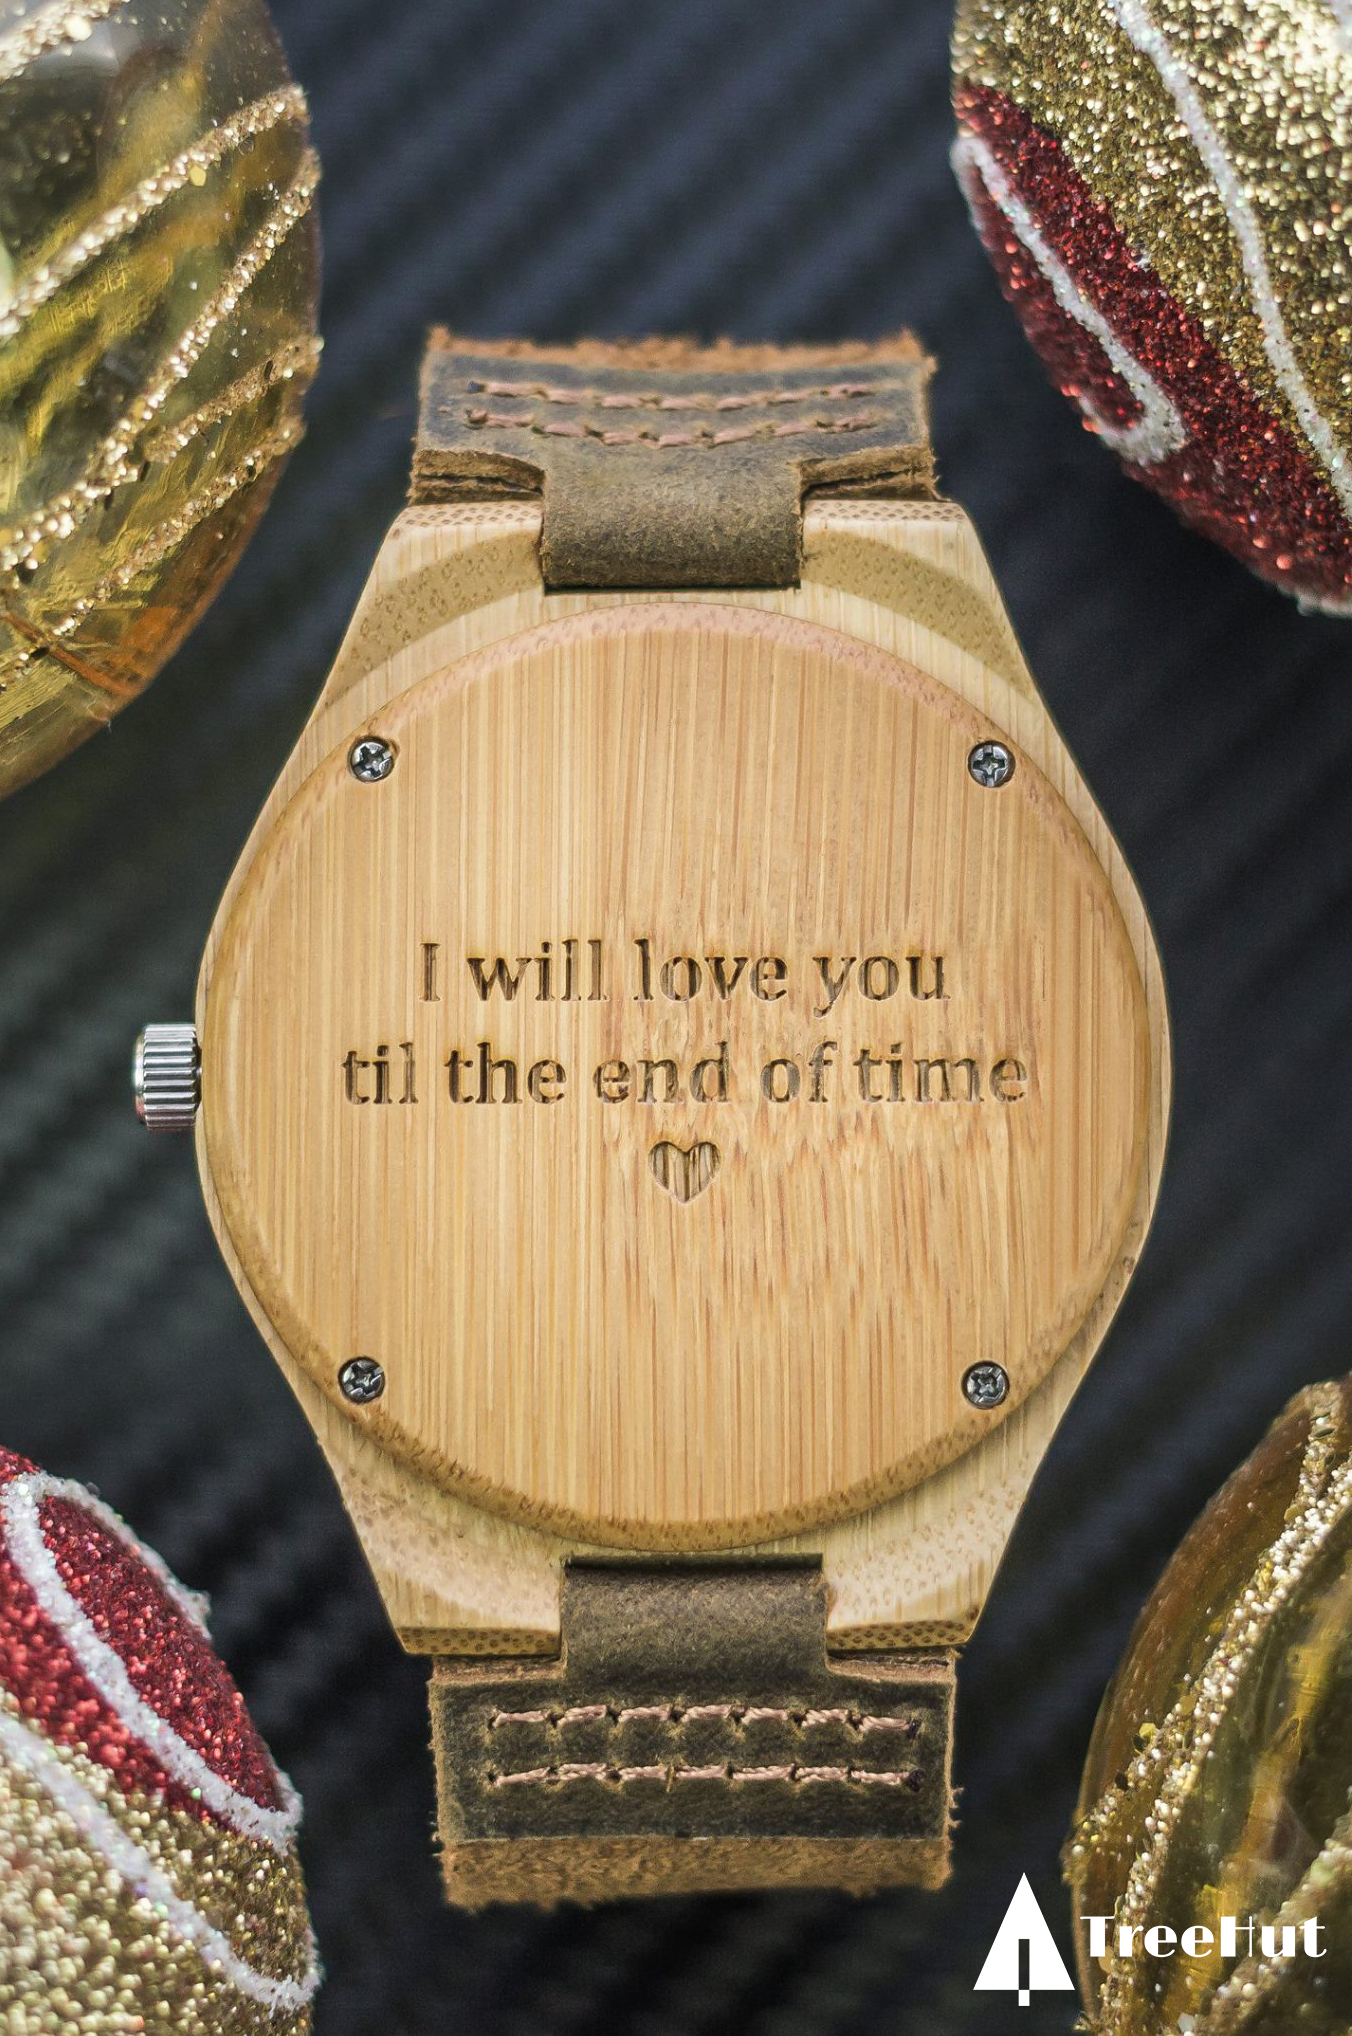 Love Short Engraving Quotes : short, engraving, quotes, Time